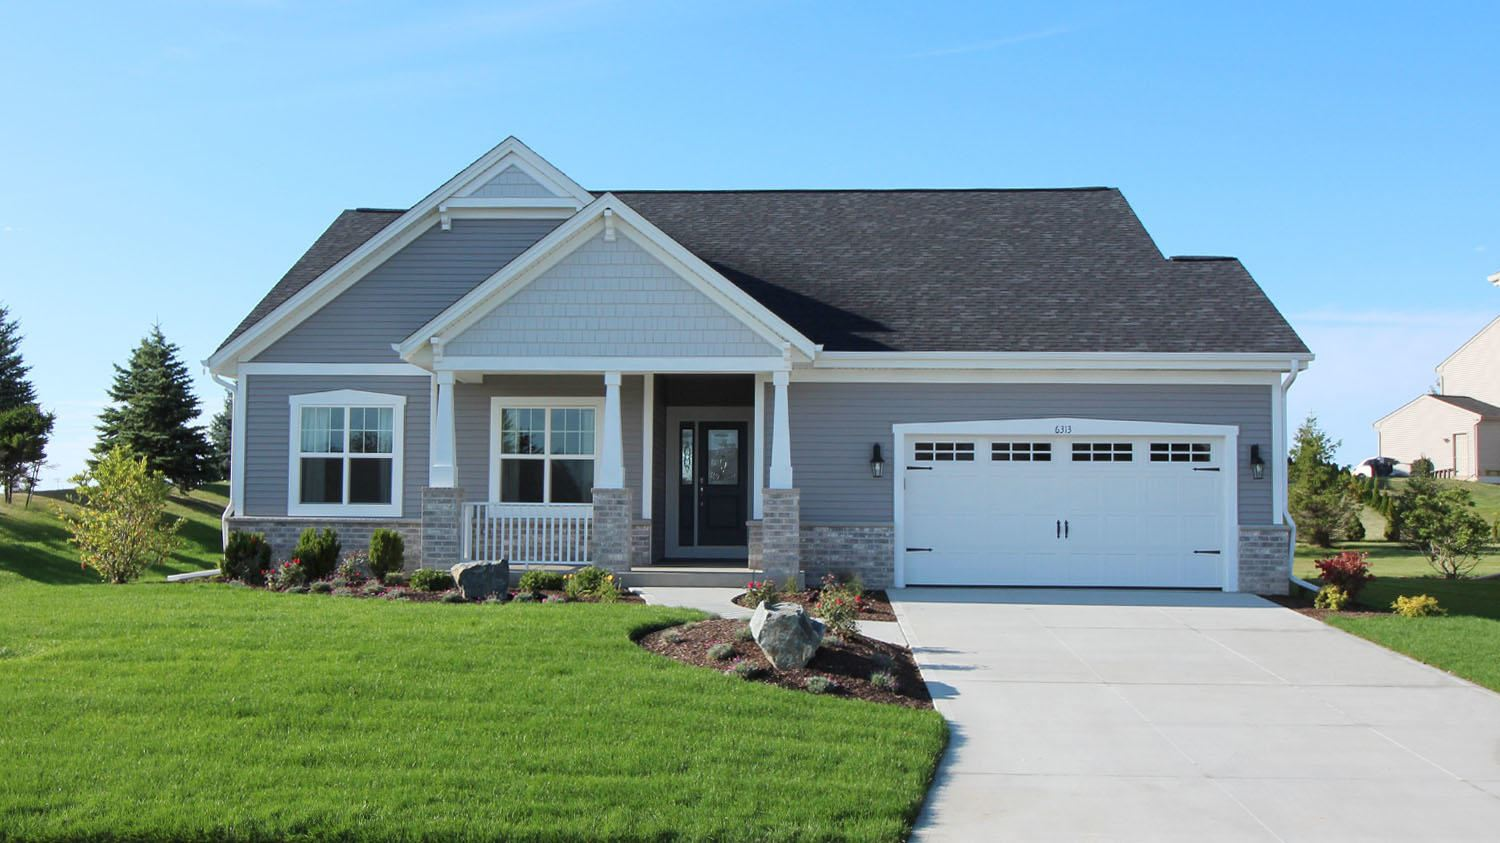 6313 Biscayne Ave, Mount Pleasant, WI 53406 - #: 1670452